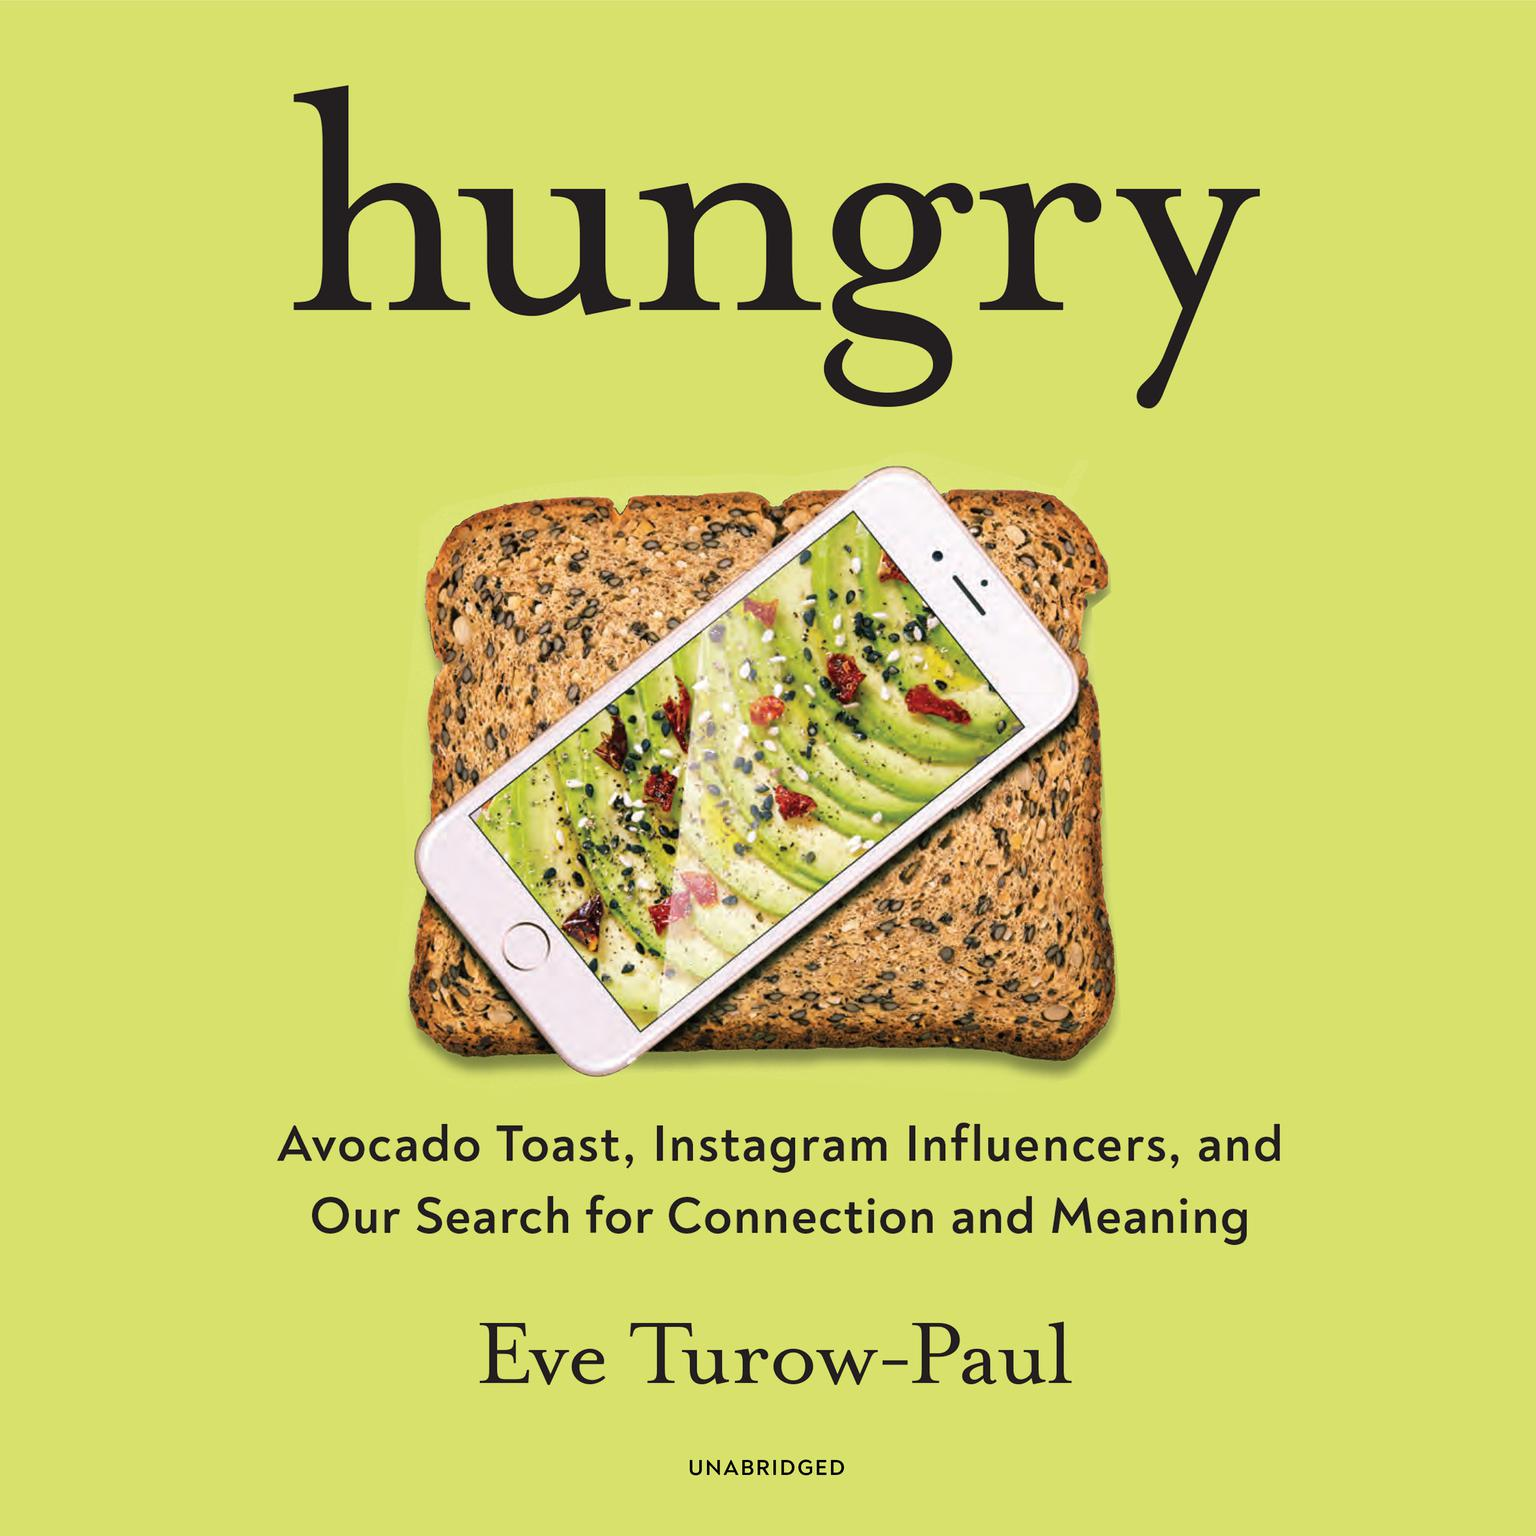 Hungry: Avocado Toast, Instagram Influencers, and Our Search for Connection and Meaning Audiobook, by Eve Turow-Paul